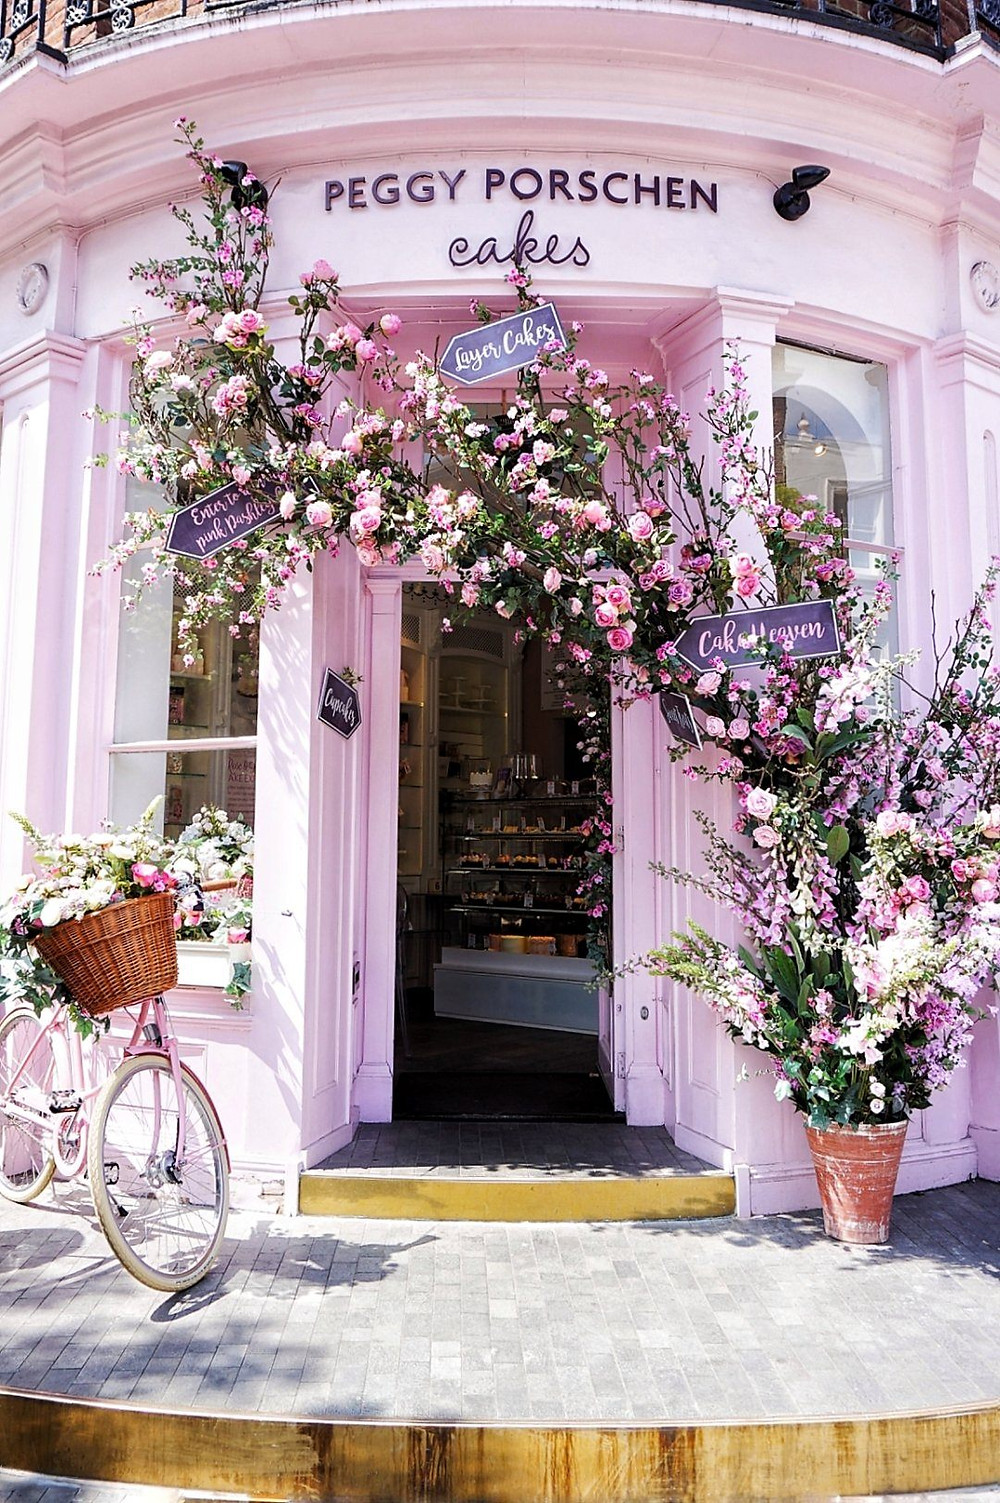 Peggy Porschen cafe and bakery in London's Belgravia neighborhood